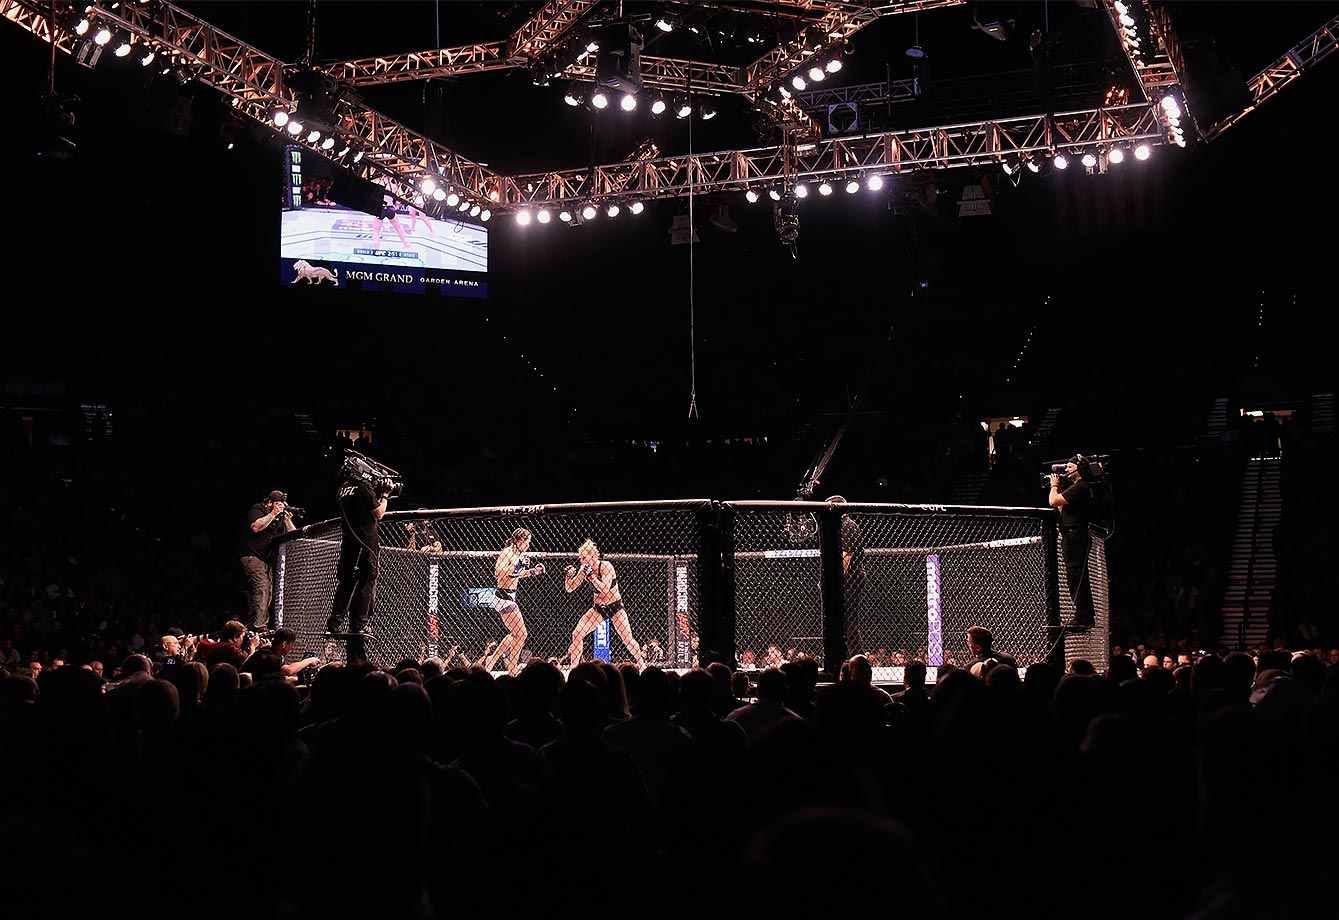 A general view of the Octagon during the world bantamweight championship fight between Holly Holm and Miesha Tate UFC 196 event inside MGM Grand Garden Arena on March 5, 2016 in Las Vegas, Nevada.